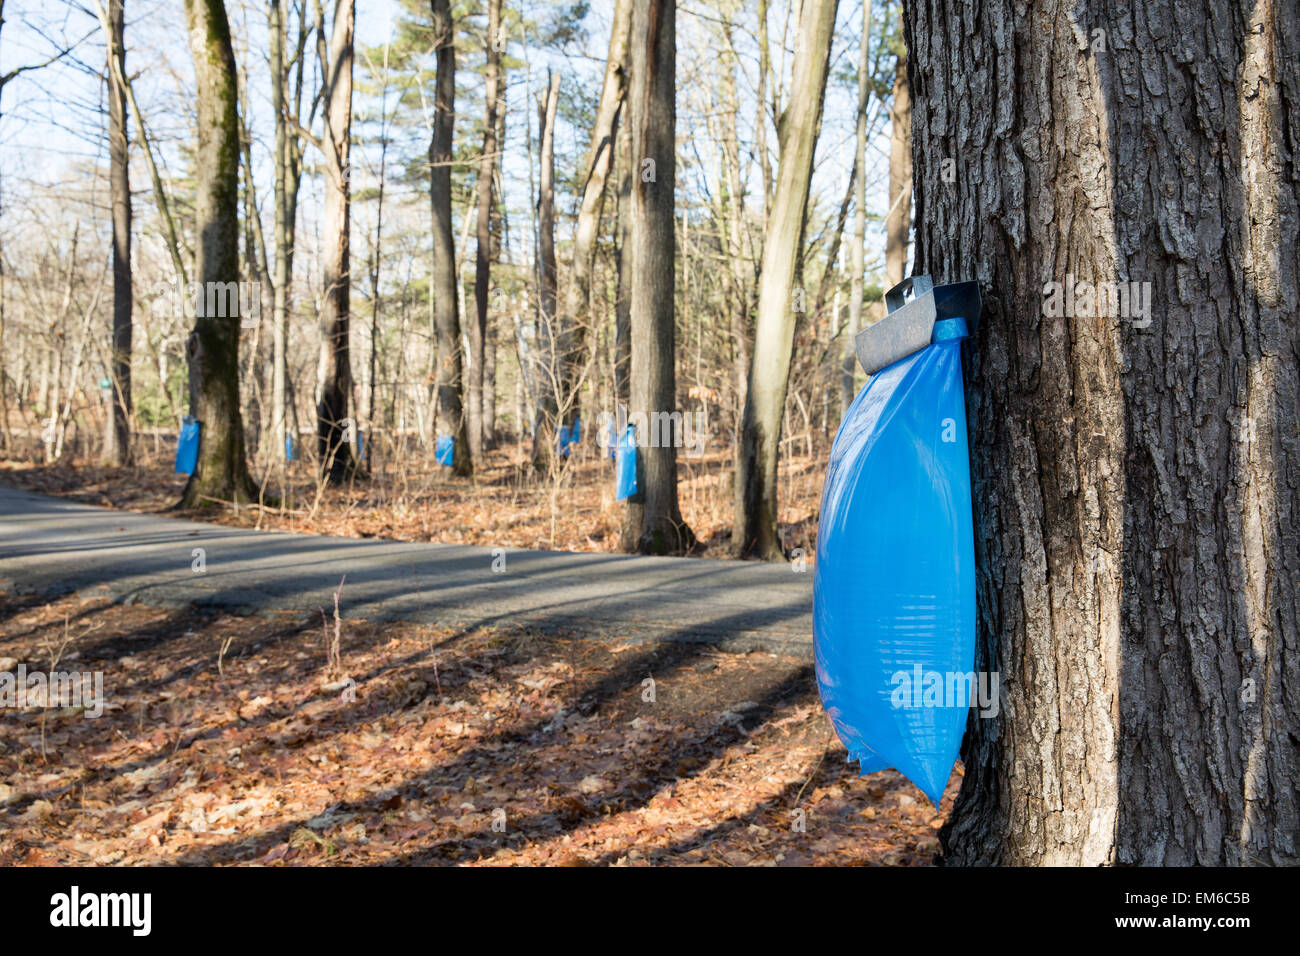 Tapping maple trees in the Spring to make maple syrup.  Selective focus on the bulging blue collection bag in the - Stock Image